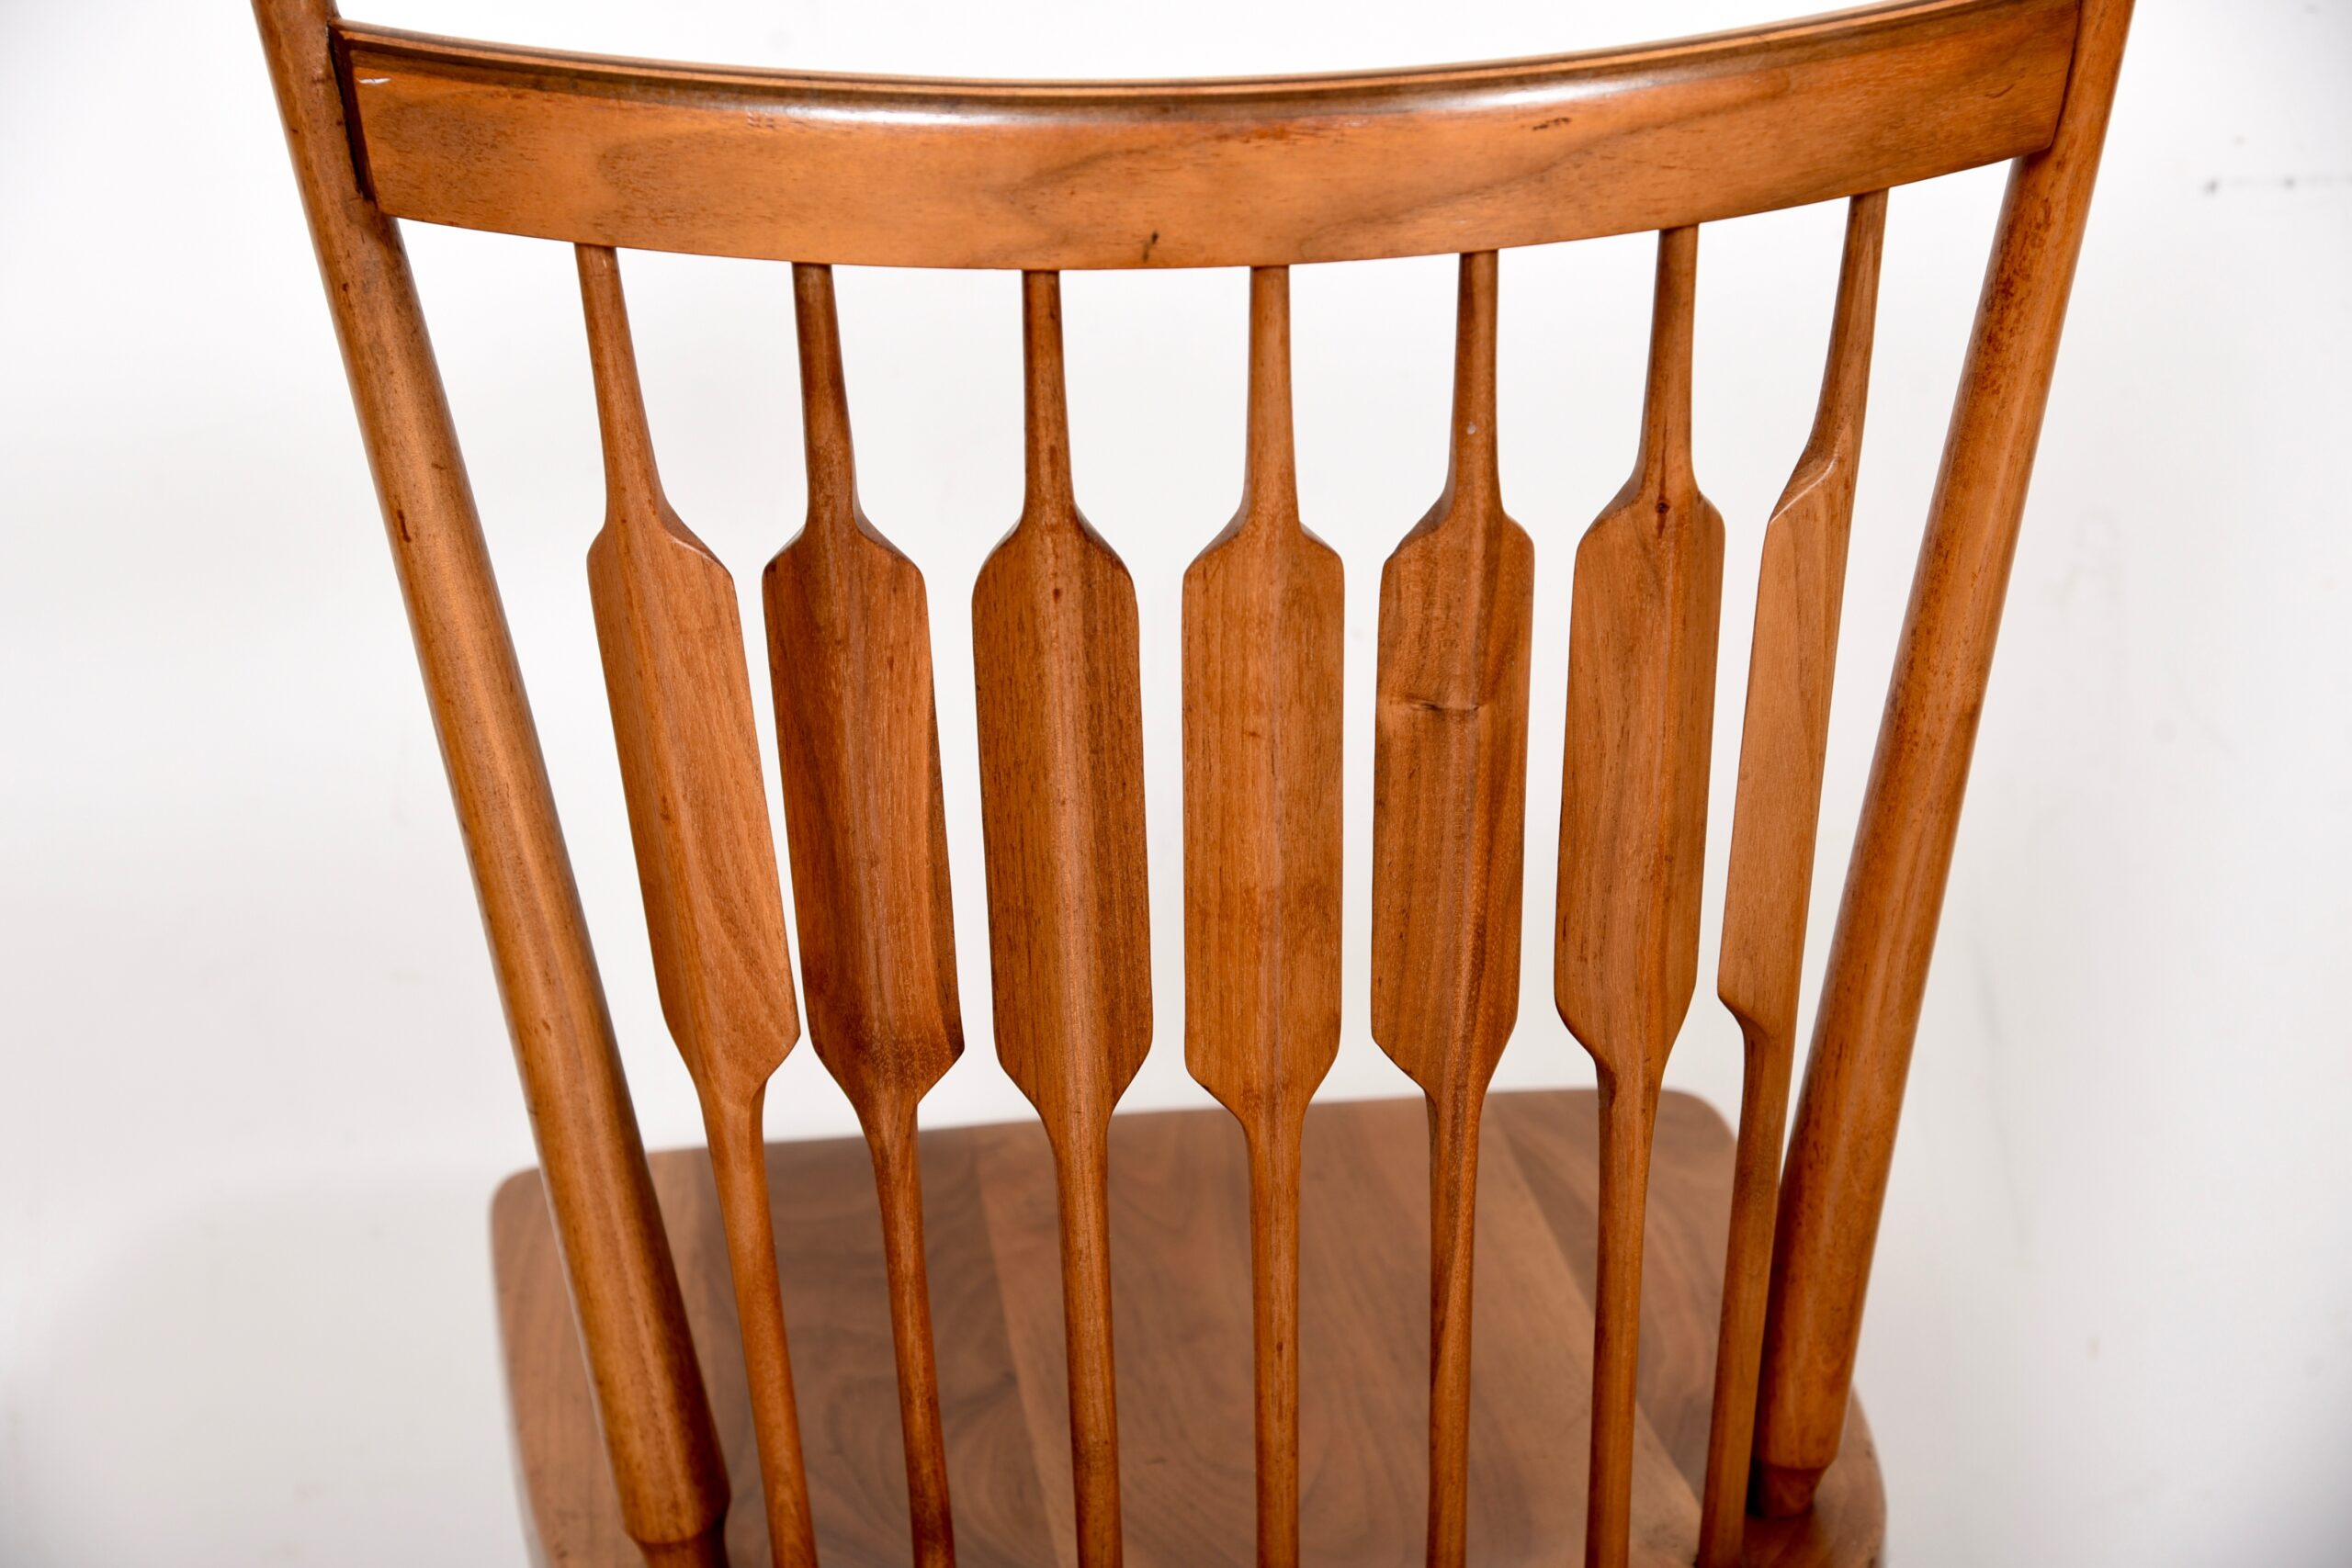 Set of 4 Mid-Century Drexel Organic-Curved Spindle-Back Dining Chairs